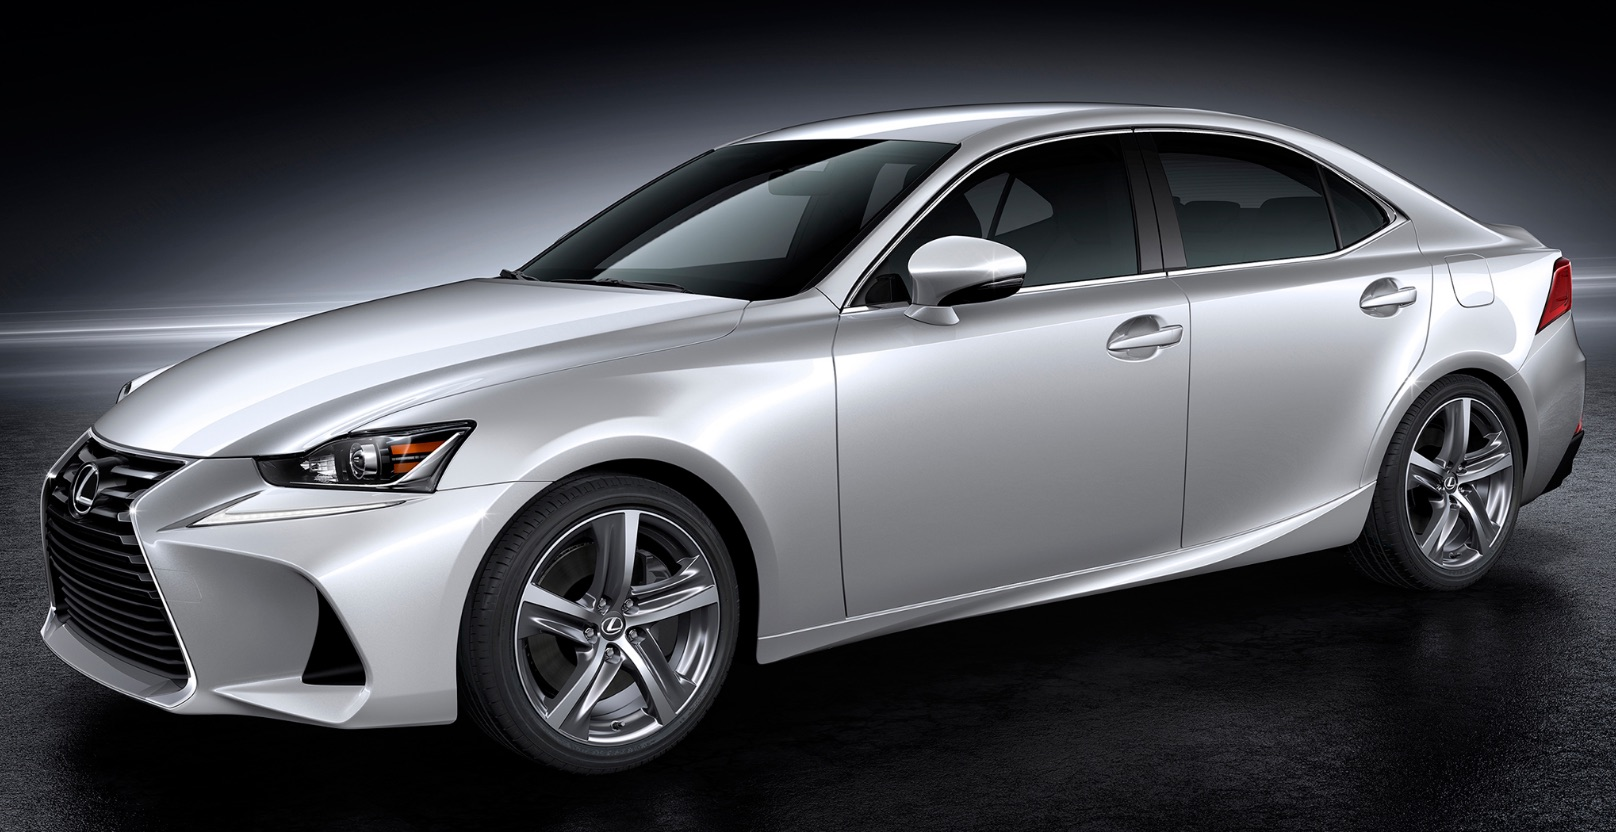 Lexus Lease vs Buy